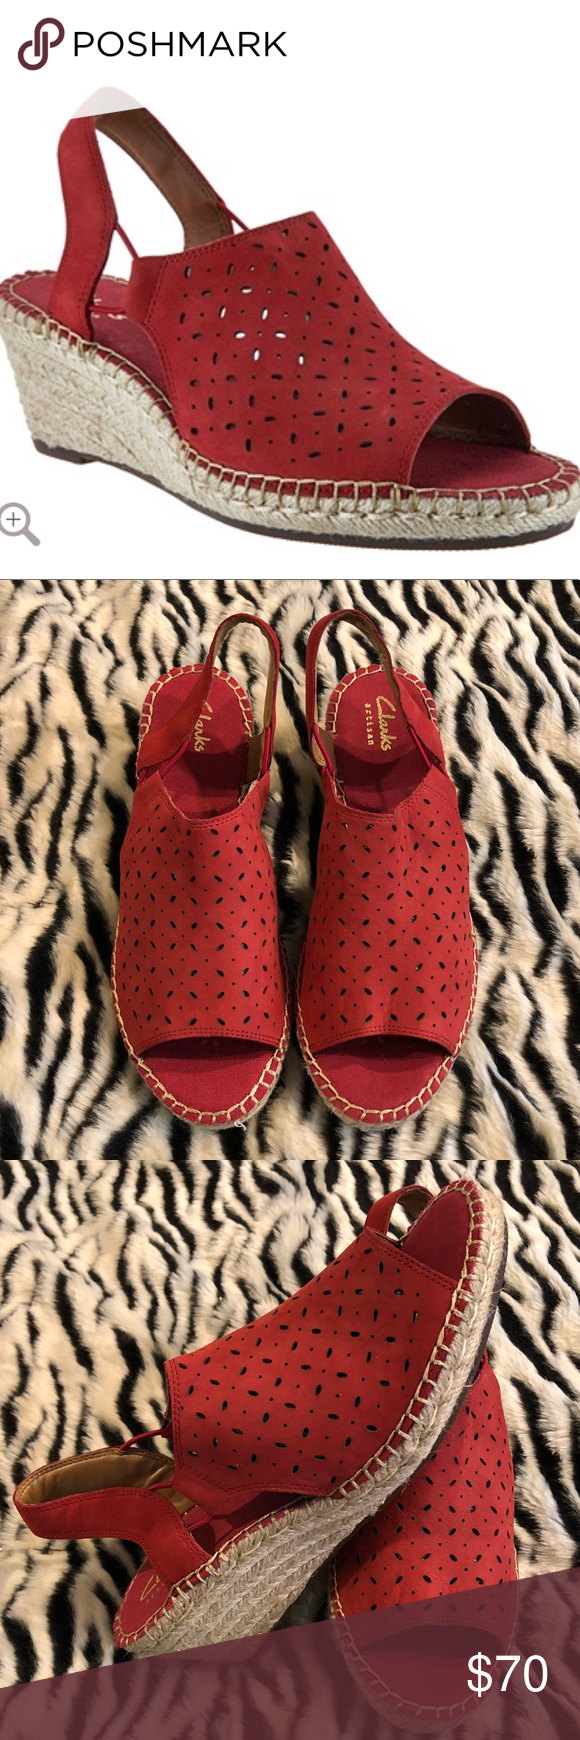 cc358f3d3f4 Colour Red · Wedge Flip Flops · Shoe · Clarks Leather Espadrille Wedges  Petrina Gail Brand new with tags. Women s Clarks Artisan Leather Espadrille